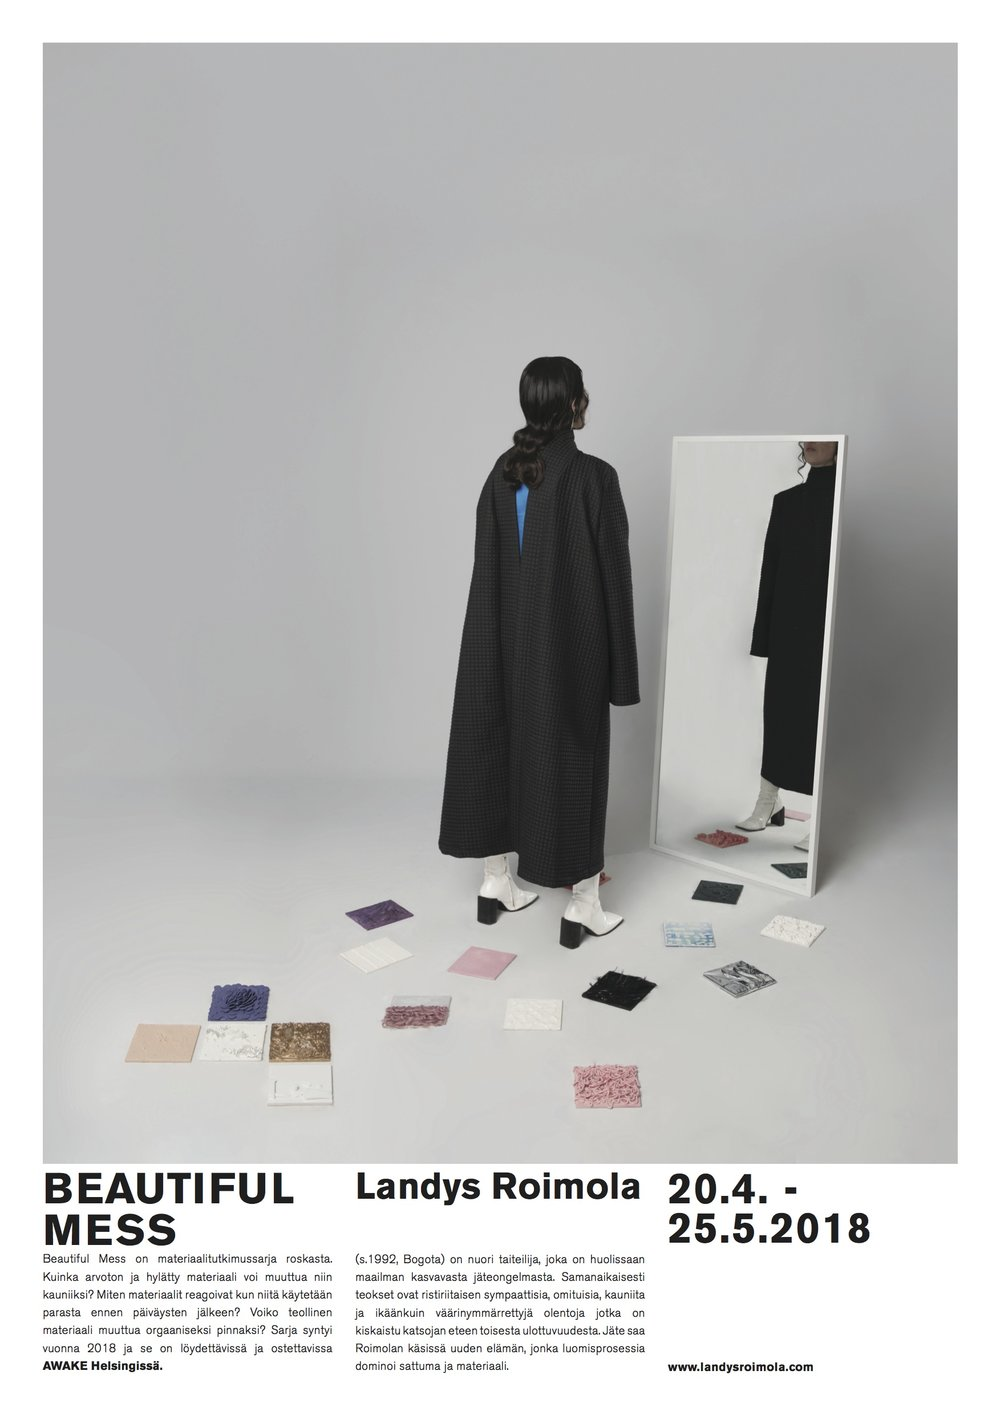 BEAUTIFUL MESS / Landys Roimola - Welcome to the opening of BEAUTIFUL MESS on the 20th of April at 6PM to Awake!The exhibition is the last one at Awake and definitely worth a visit. The texture, colors and composition of these pieces are something different.Beautiful Mess is a series of material experiences of trash. How can something so worthless and abandoned become so beautiful? How do the materials react when used after expiration date? Can industrial turn into organic? Series started at 2018 and can be found and bought at AWAKE Helsinki.Landys Roimola(born 1992, Bogota) is a young artist, who is concerned about the growing problem with waste and recycling. At the same time the sculptures are still relatable, strange and beautiful - like misunderstood creatures that have been pulled from another universe. Dominated by the material, and with some unexpected results along the way, the waste gets a new life in Roimola's hands.www.landysroimola.com